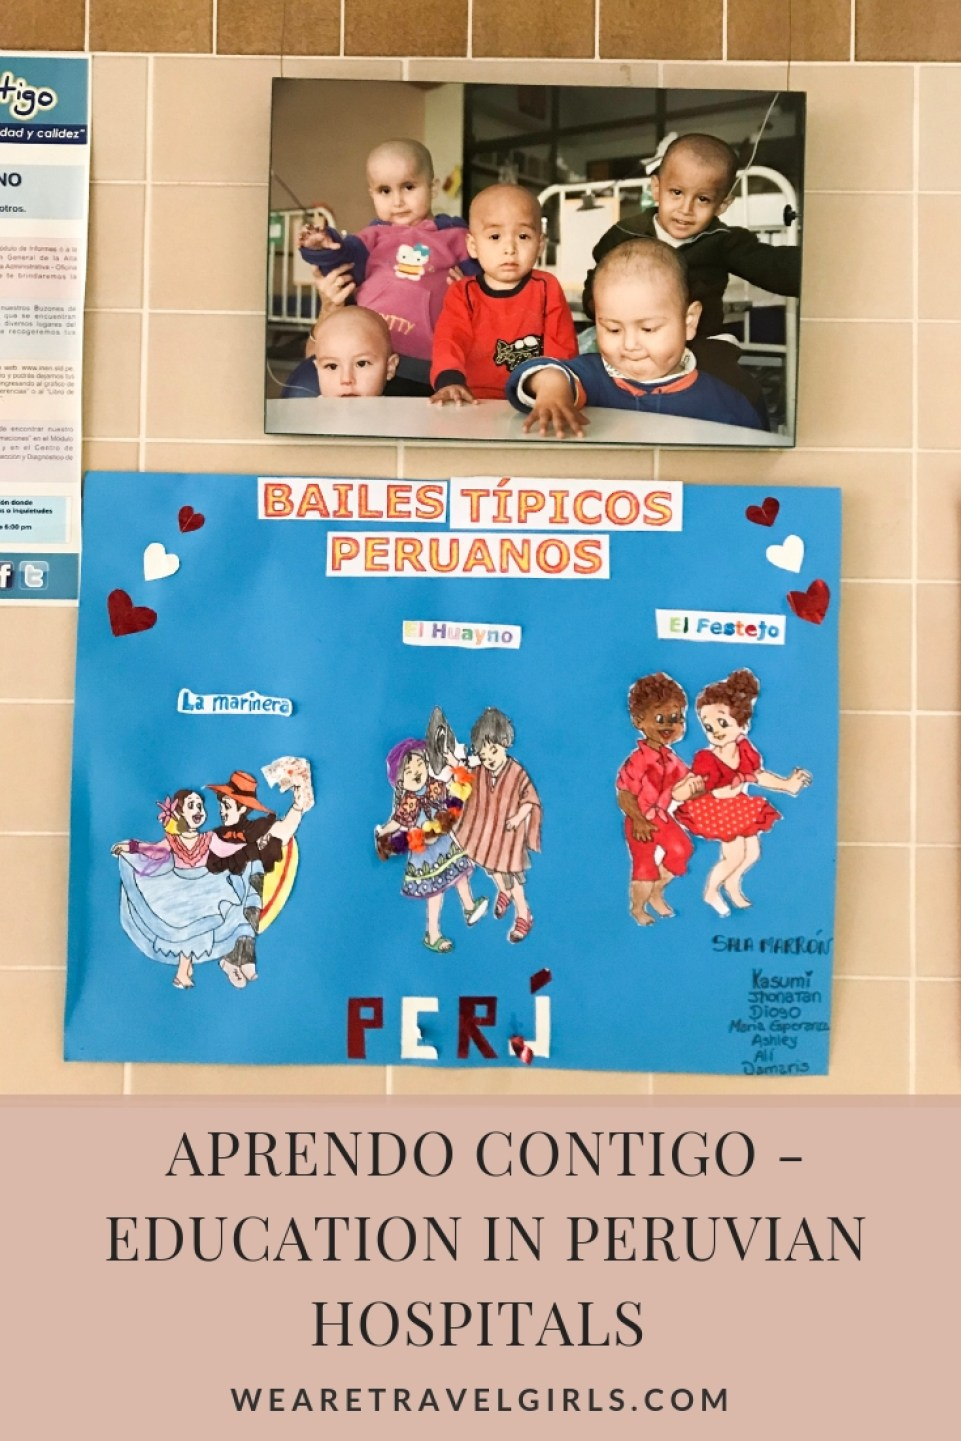 Aprendo Contigo - Education in Peruvian Hospitals